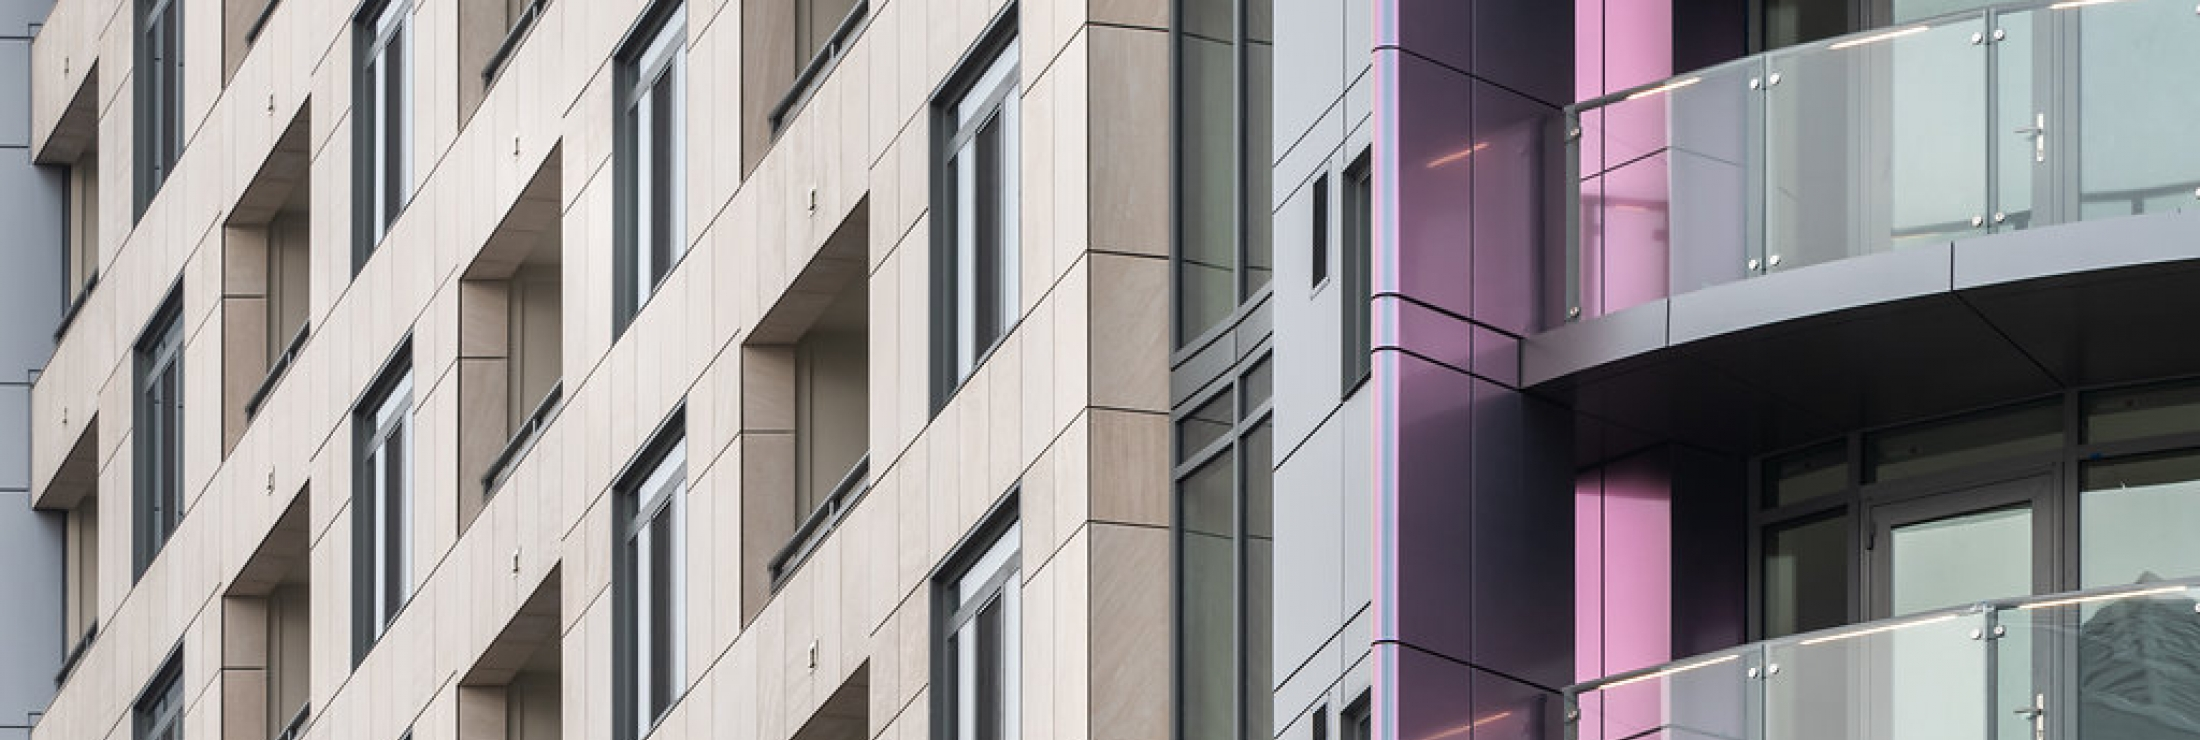 400 K Street NW - Detail - Ceramic5 Rainscreen - Photo Credit: Brycen Fisher Photography